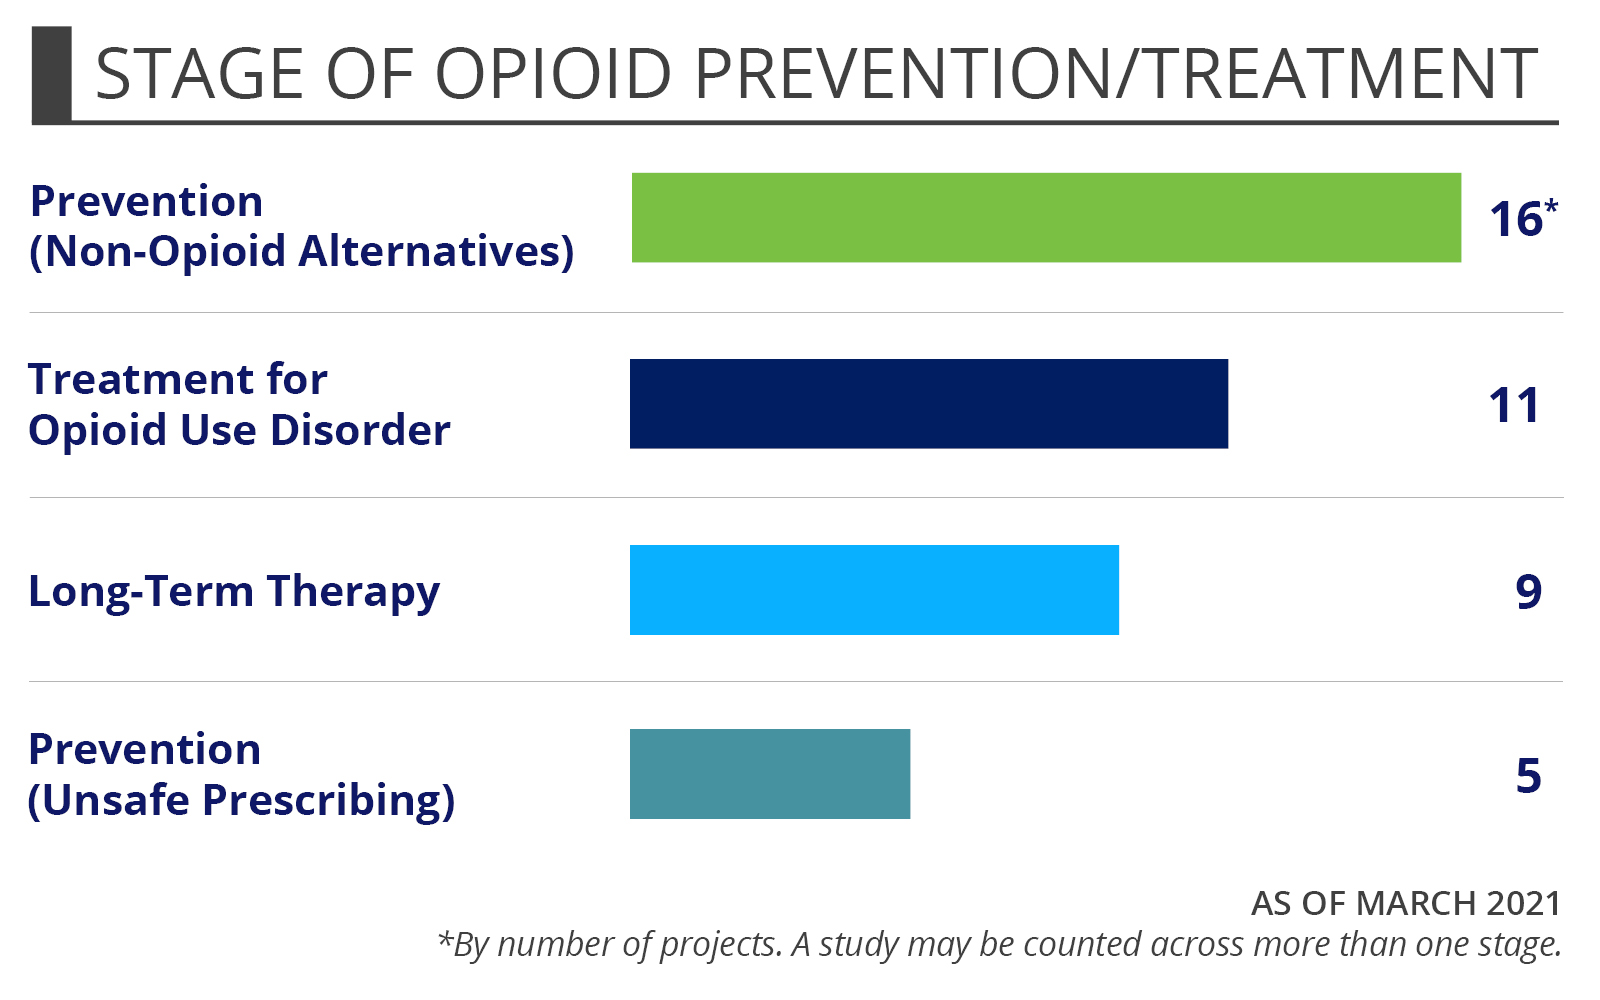 Funded projects by stage of opioid prevention/treatment: Prevention/Non-opioid alternatives (15), Treatment for opioid use disorder (11), Long-term therapy (9), Prevention/Unsafe prescribing (5), As of April 2019